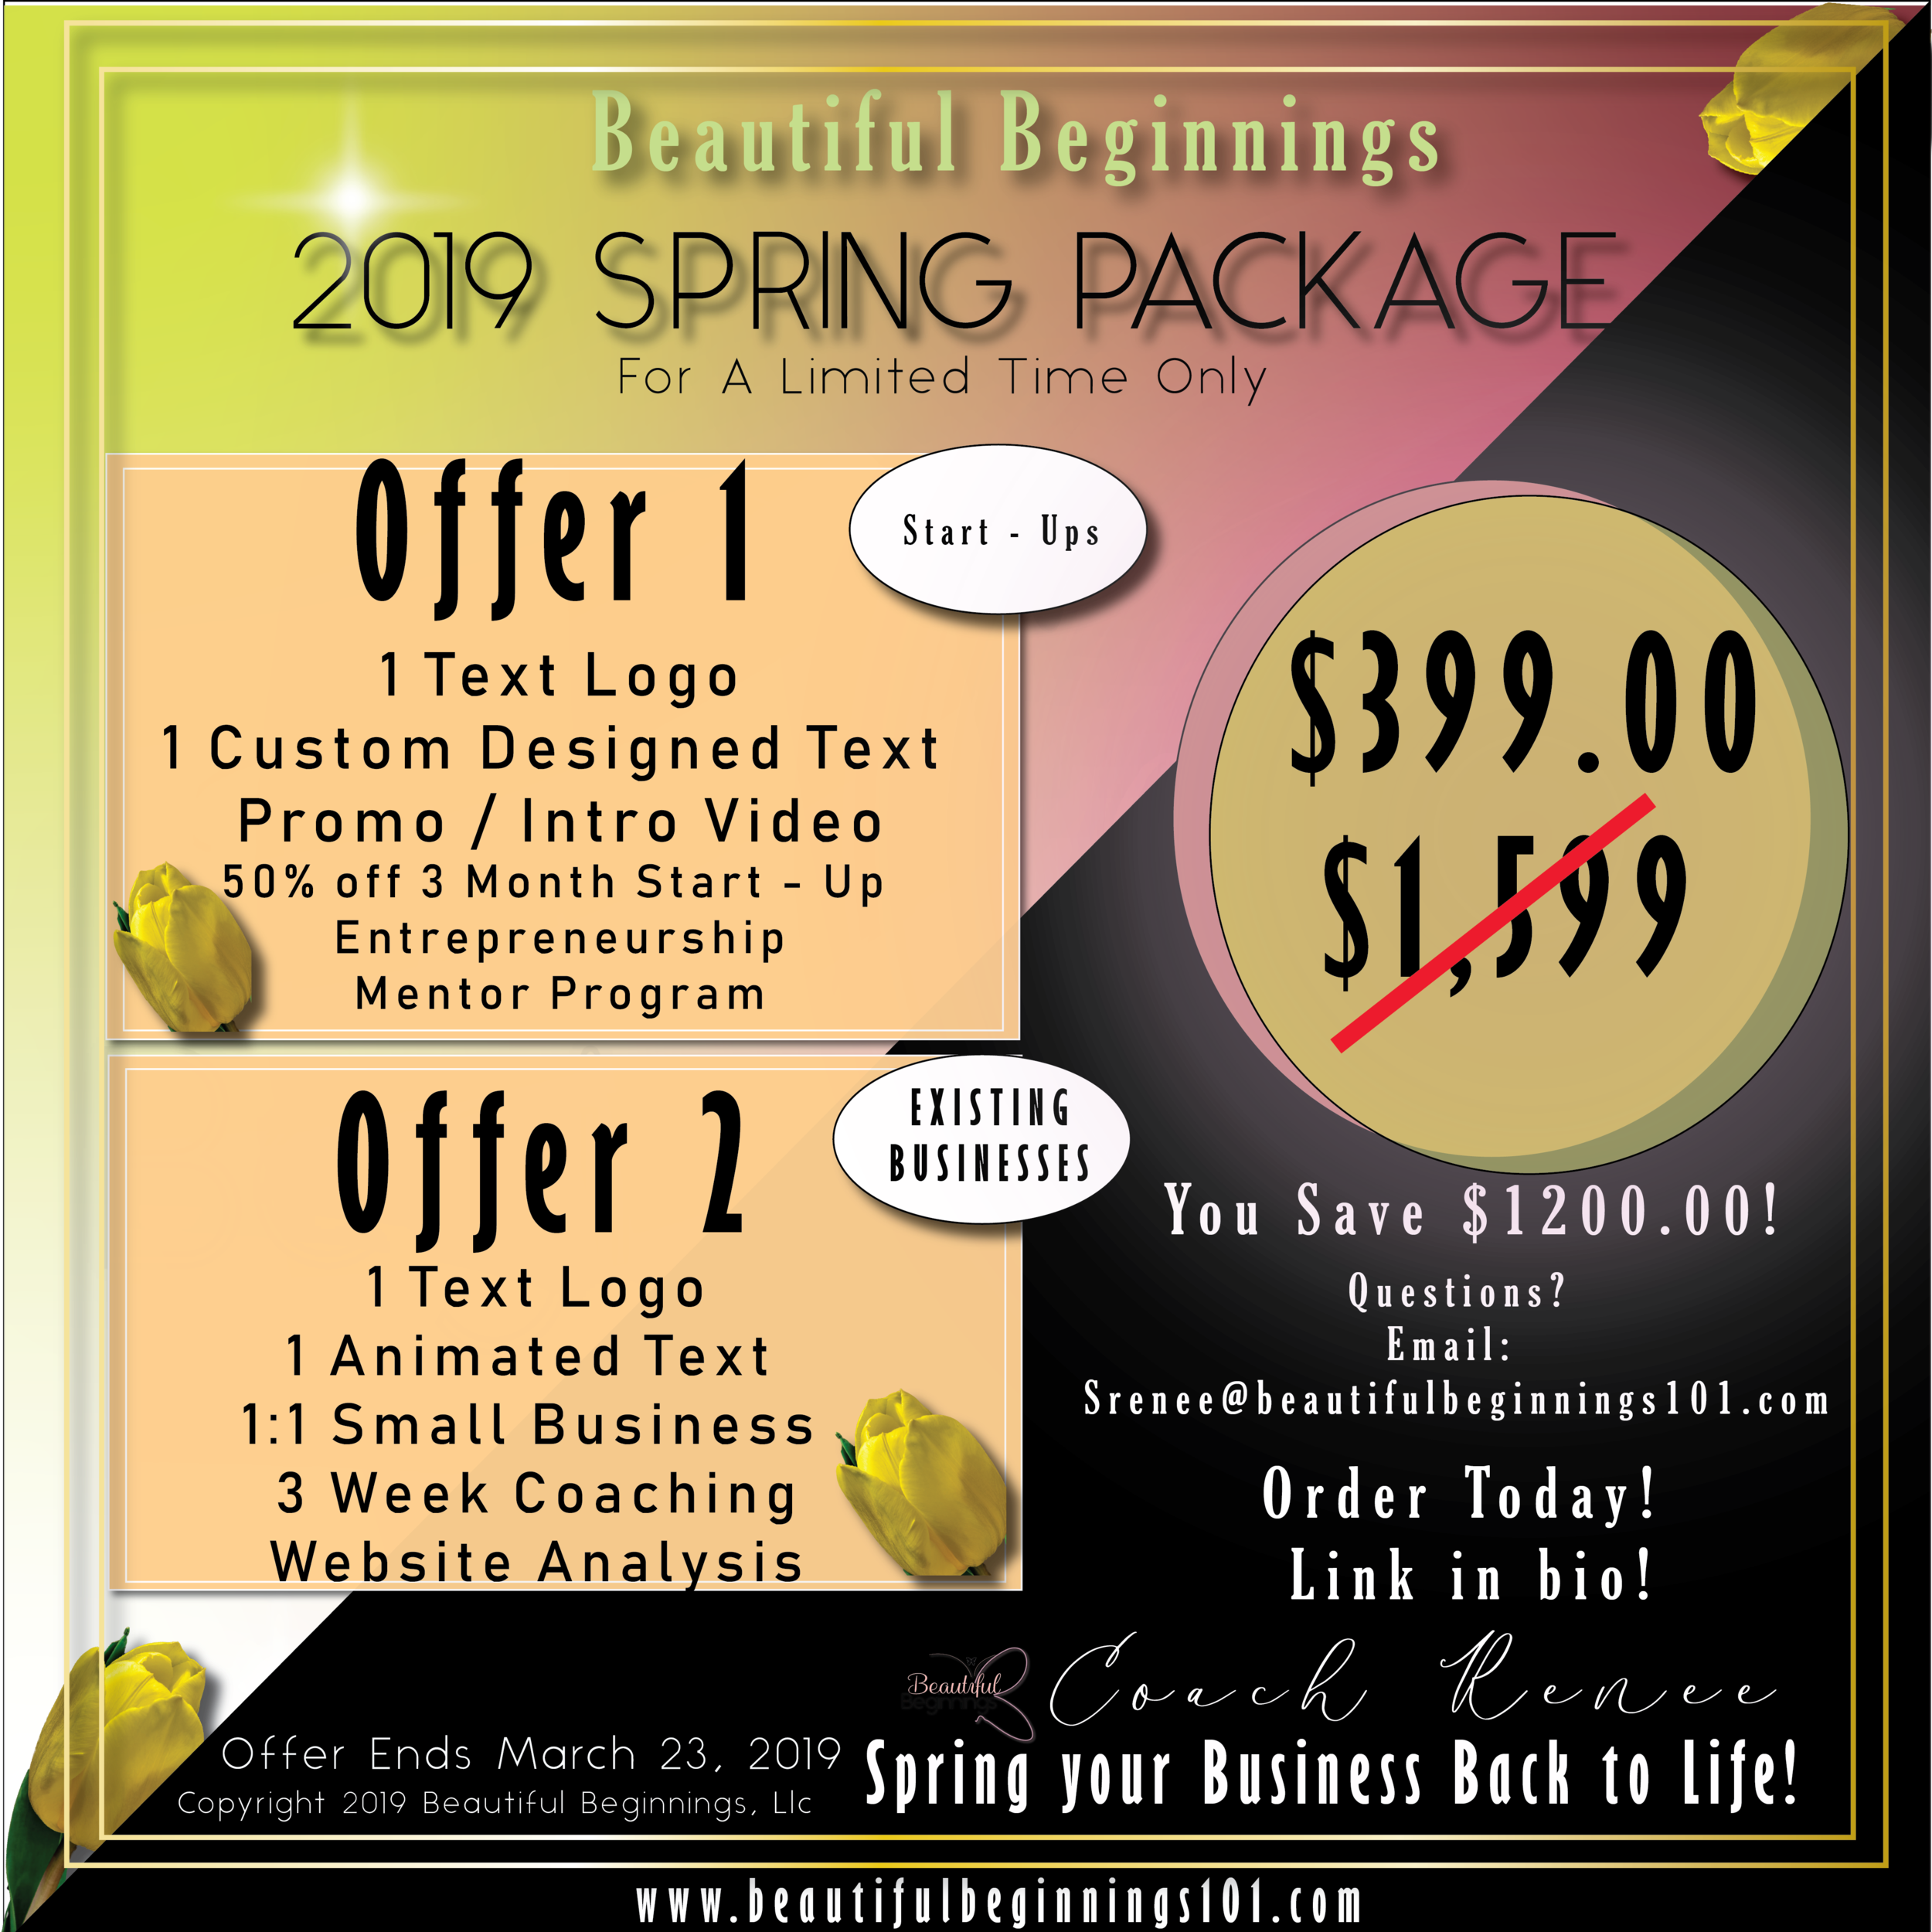 BB SPRING PACKAGE 2019-01.png